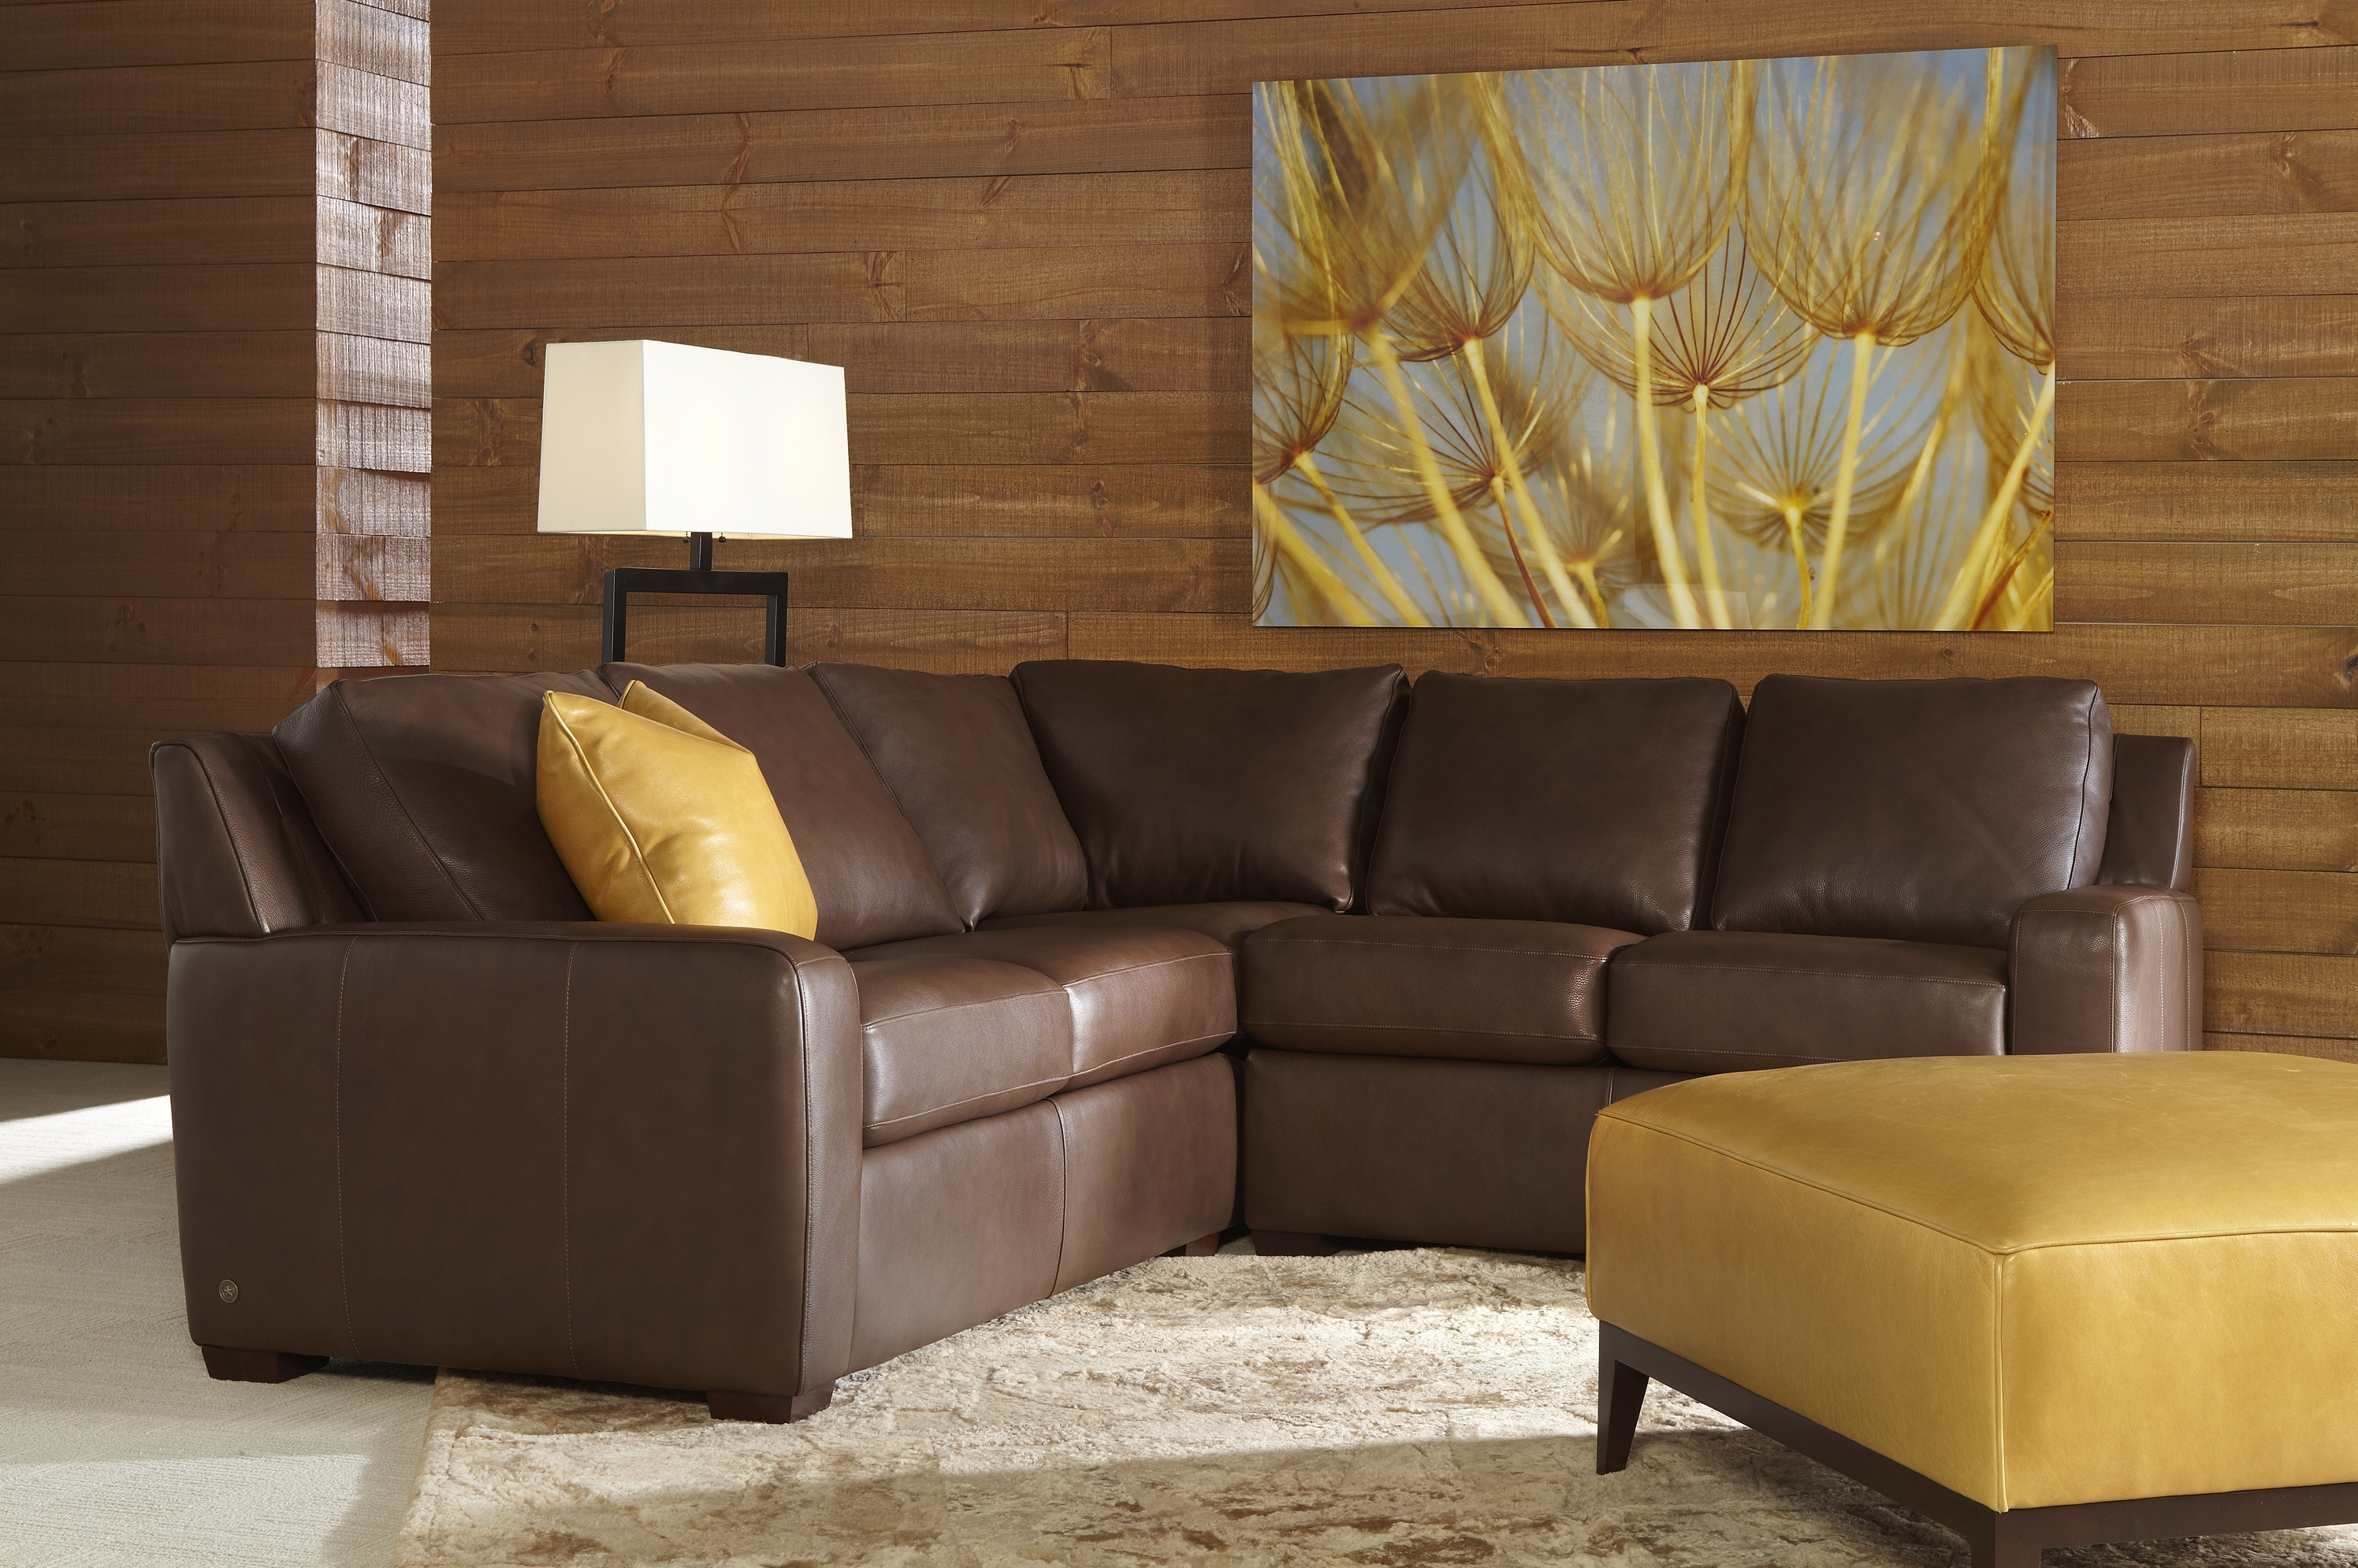 Jordans Sectional Sofas Throughout 2019 Sectional Sofas – Elegance And Style Tailored Just For Youand (View 9 of 20)